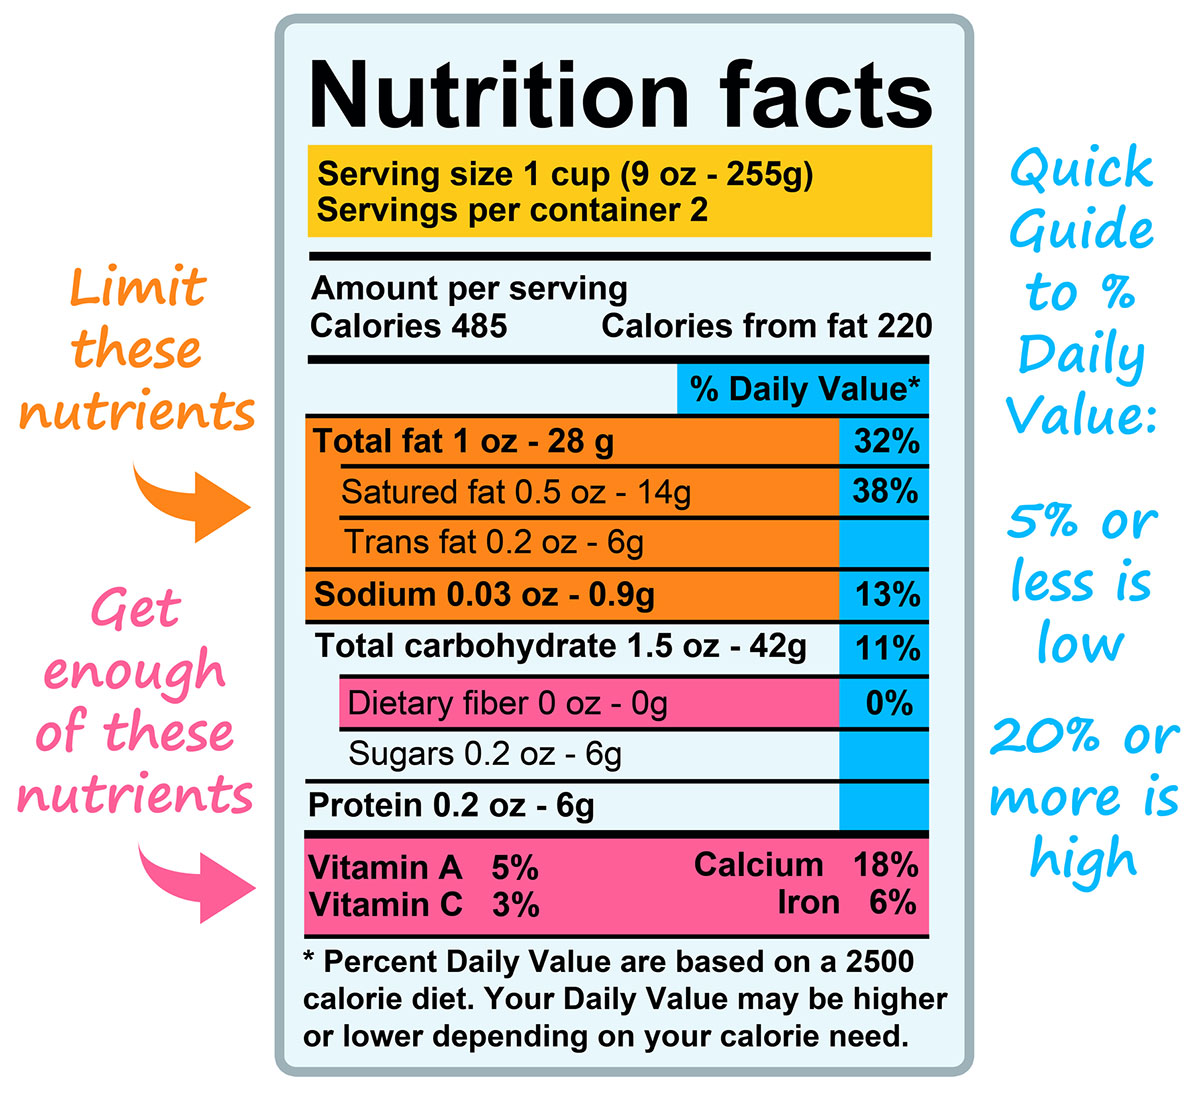 Food Label Confusion Healthy Selfie By Christine Bou Sleiman Top Los Angeles Nutritionist